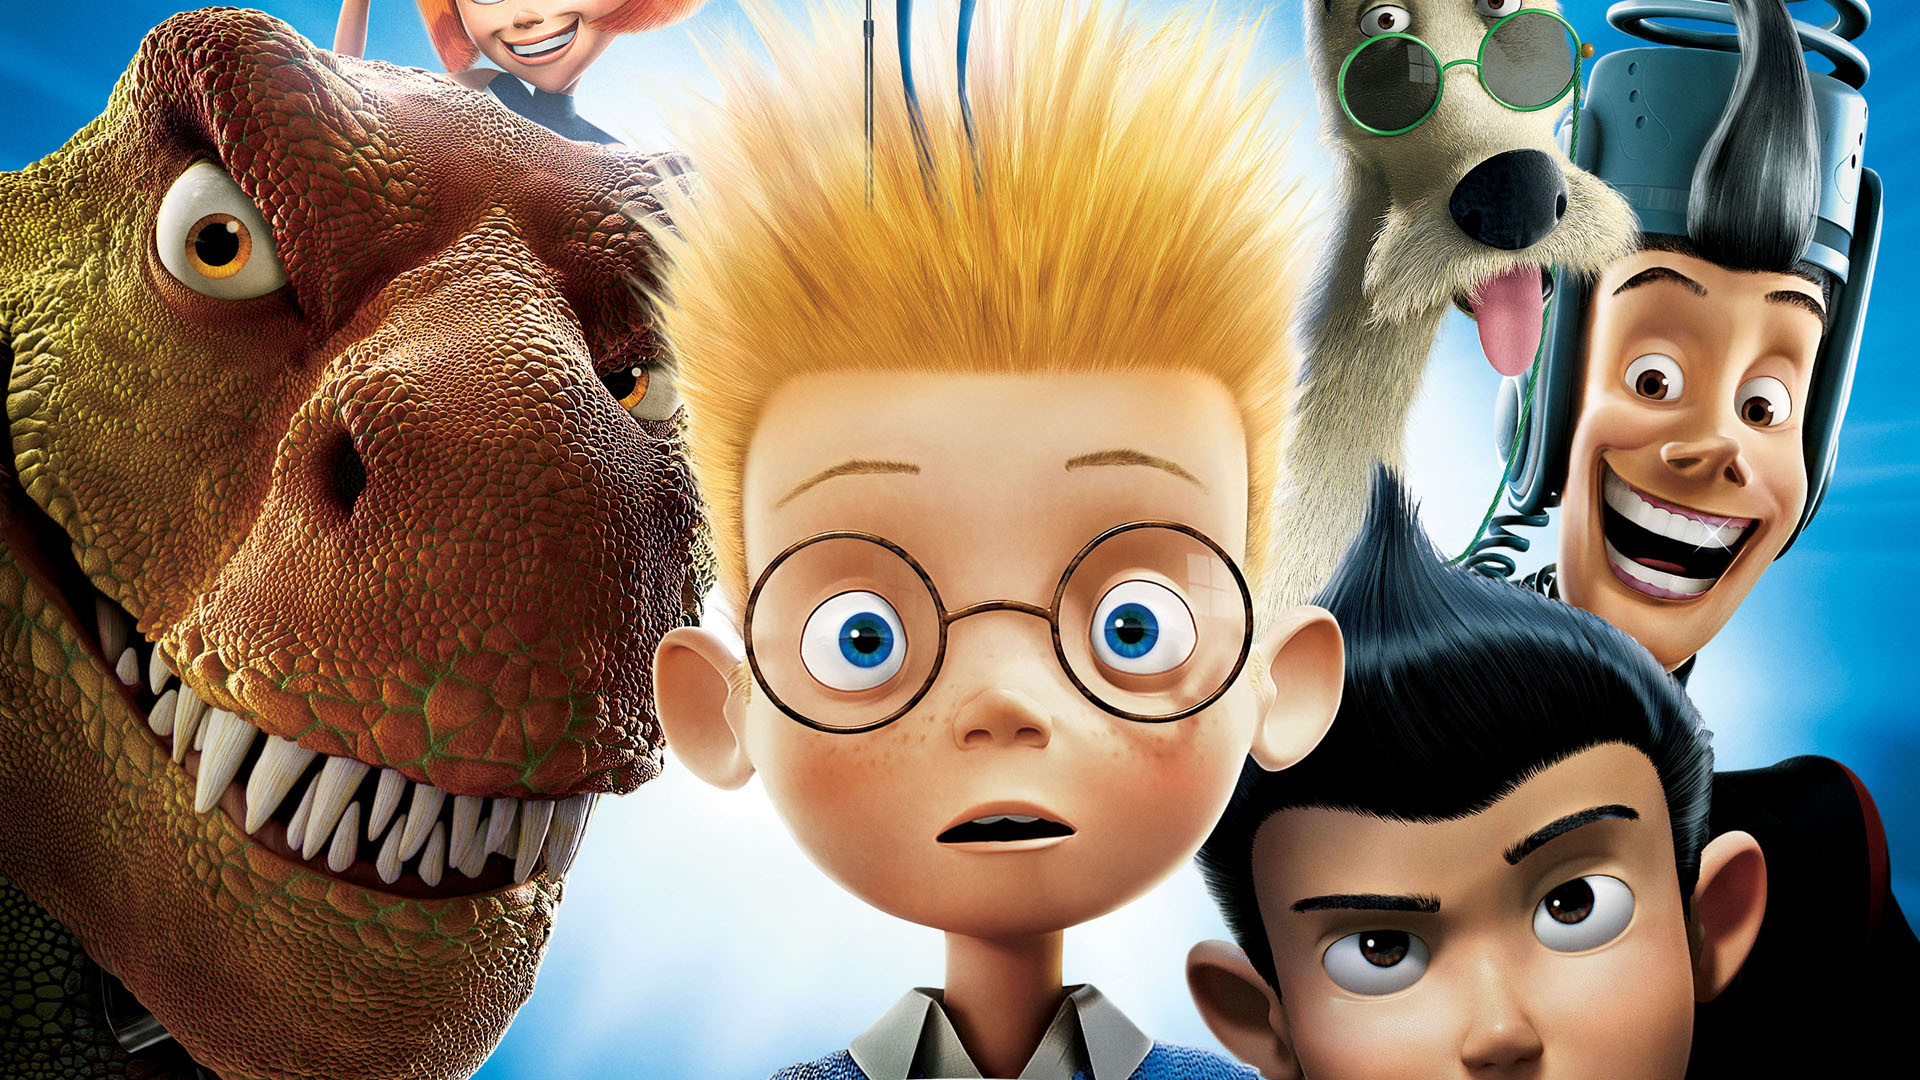 meet the robinsons family scene pic of warm